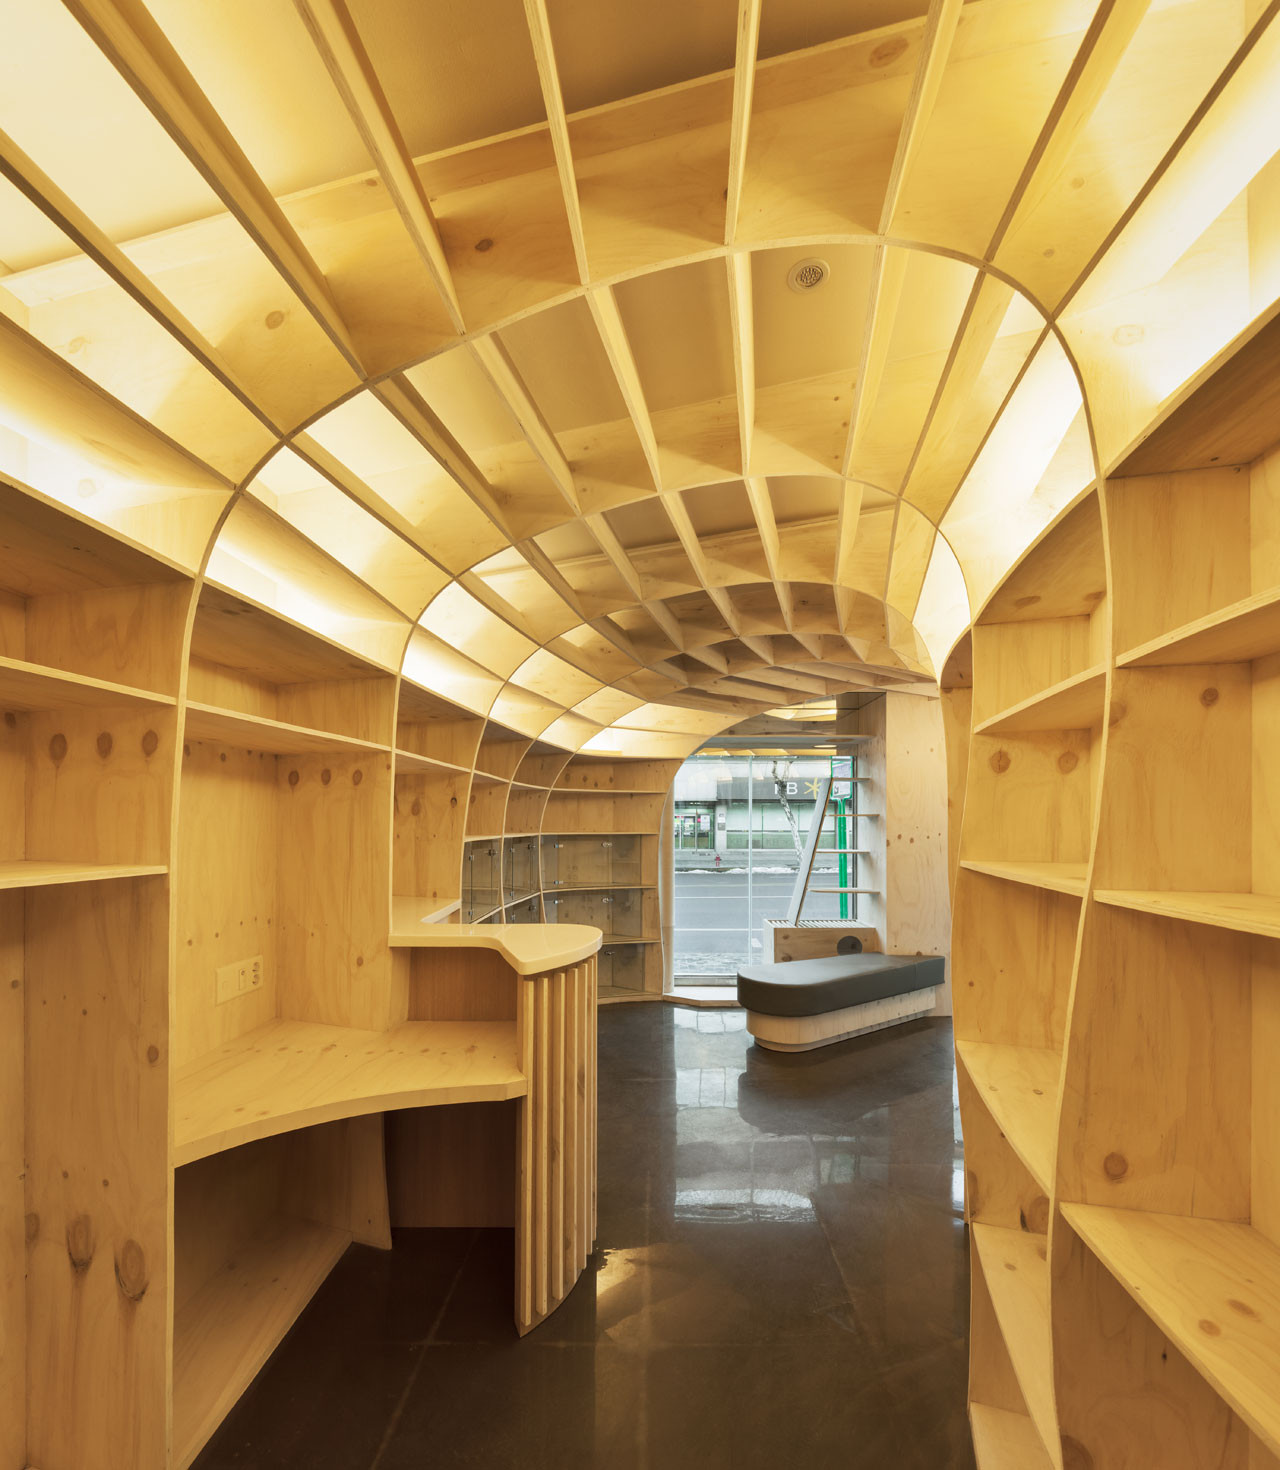 Gallery of a animal hospital jhy architect associates 5 for Architect associates